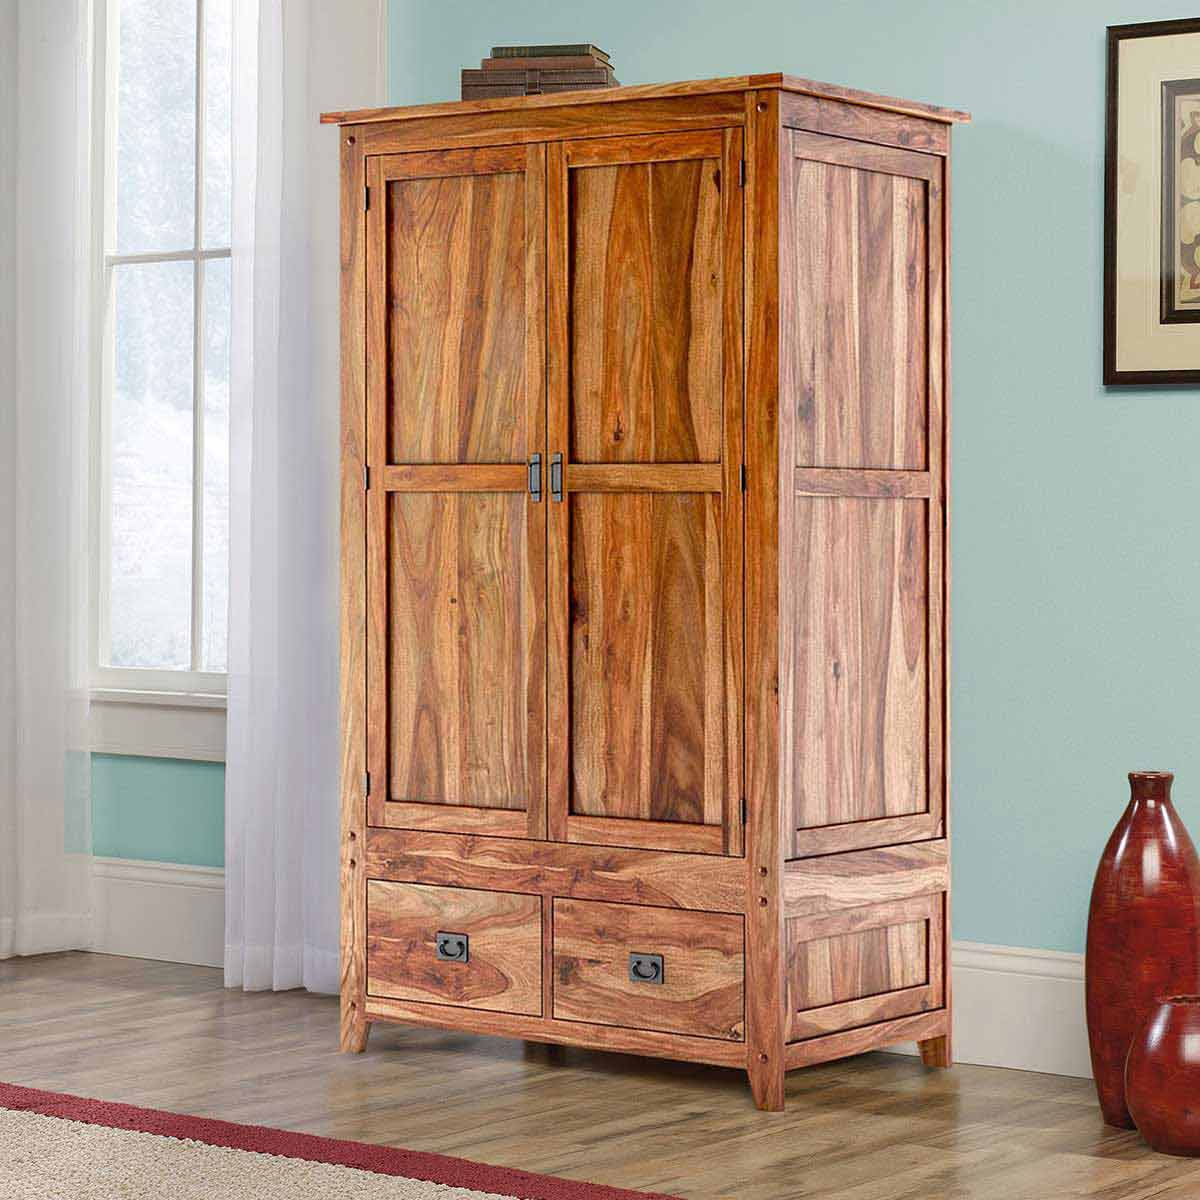 Image of: Simple Wooden Armoire